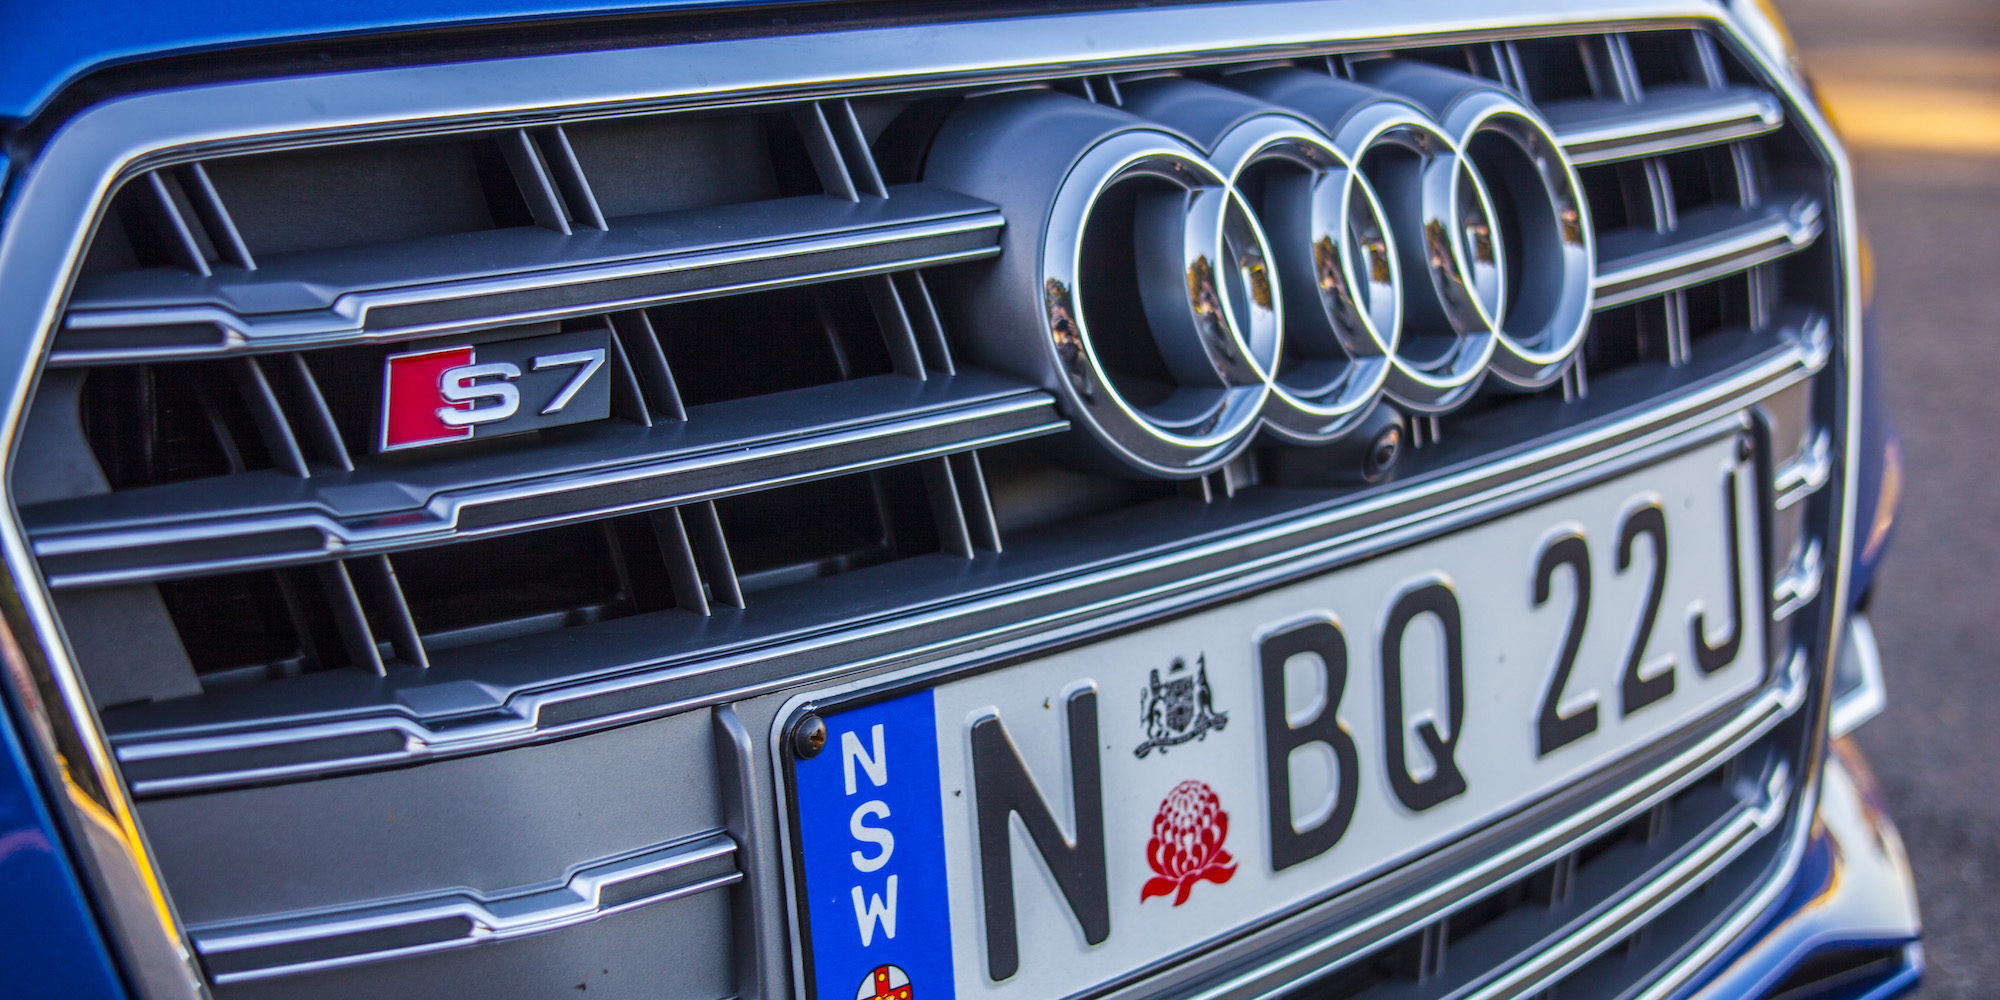 2016 Audi S7 Grille (Photo 19 of 30)